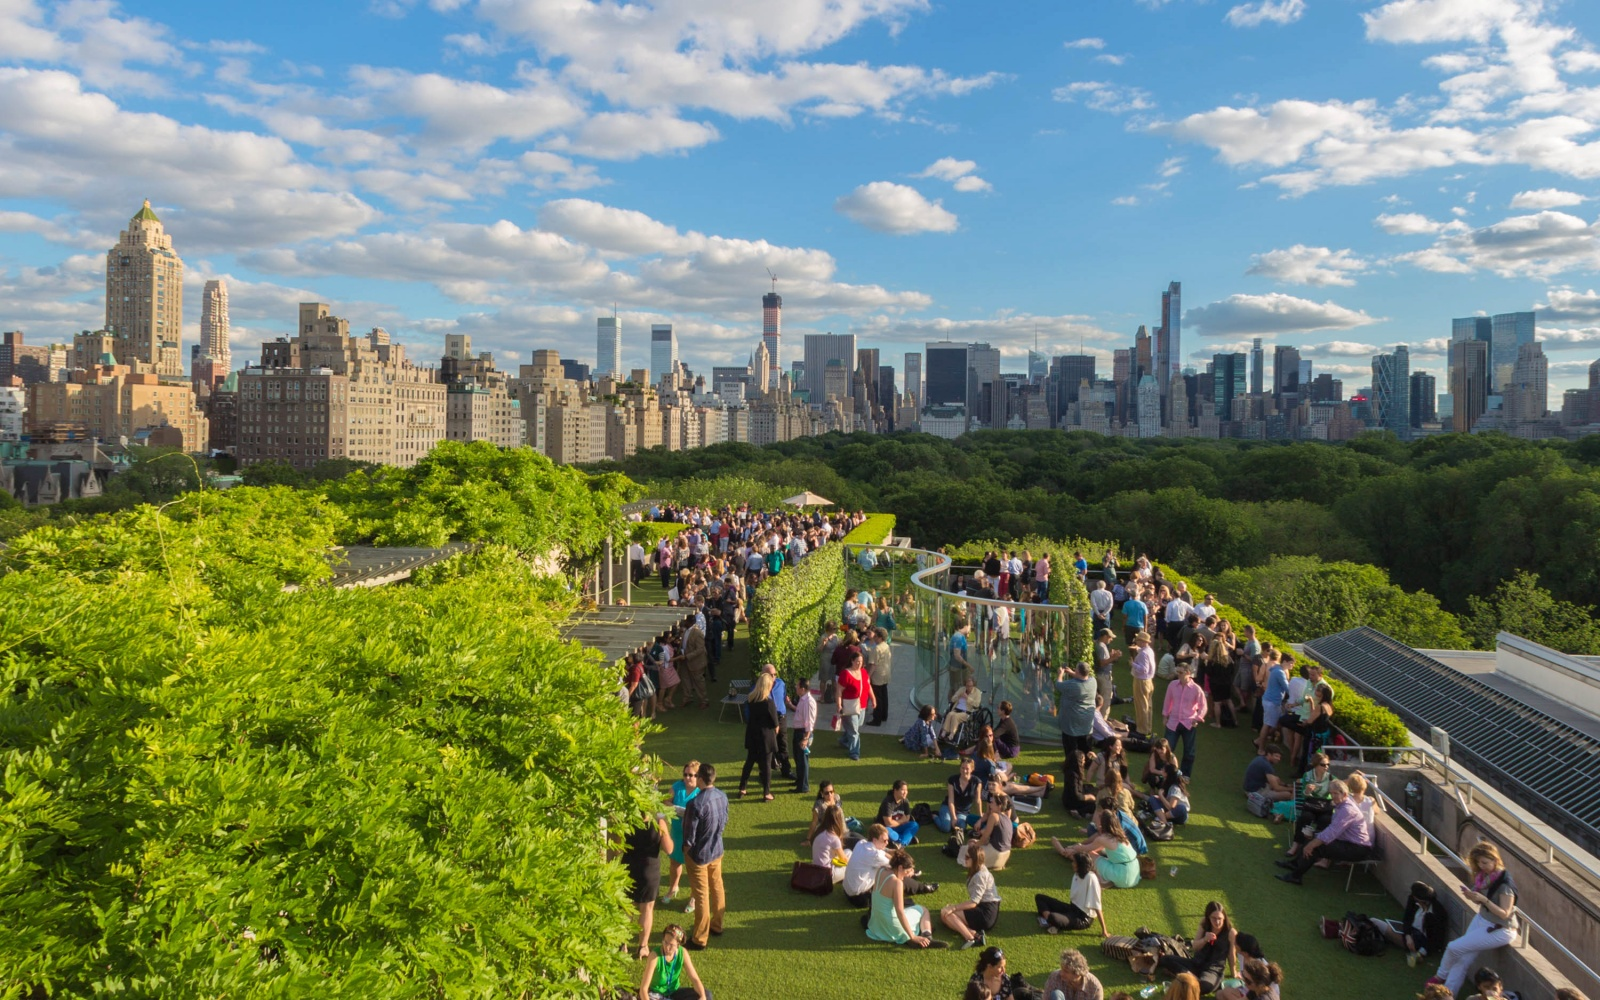 Marvelous Rooftop Garden And Martini Café At The Metropolitan Museum Of Art